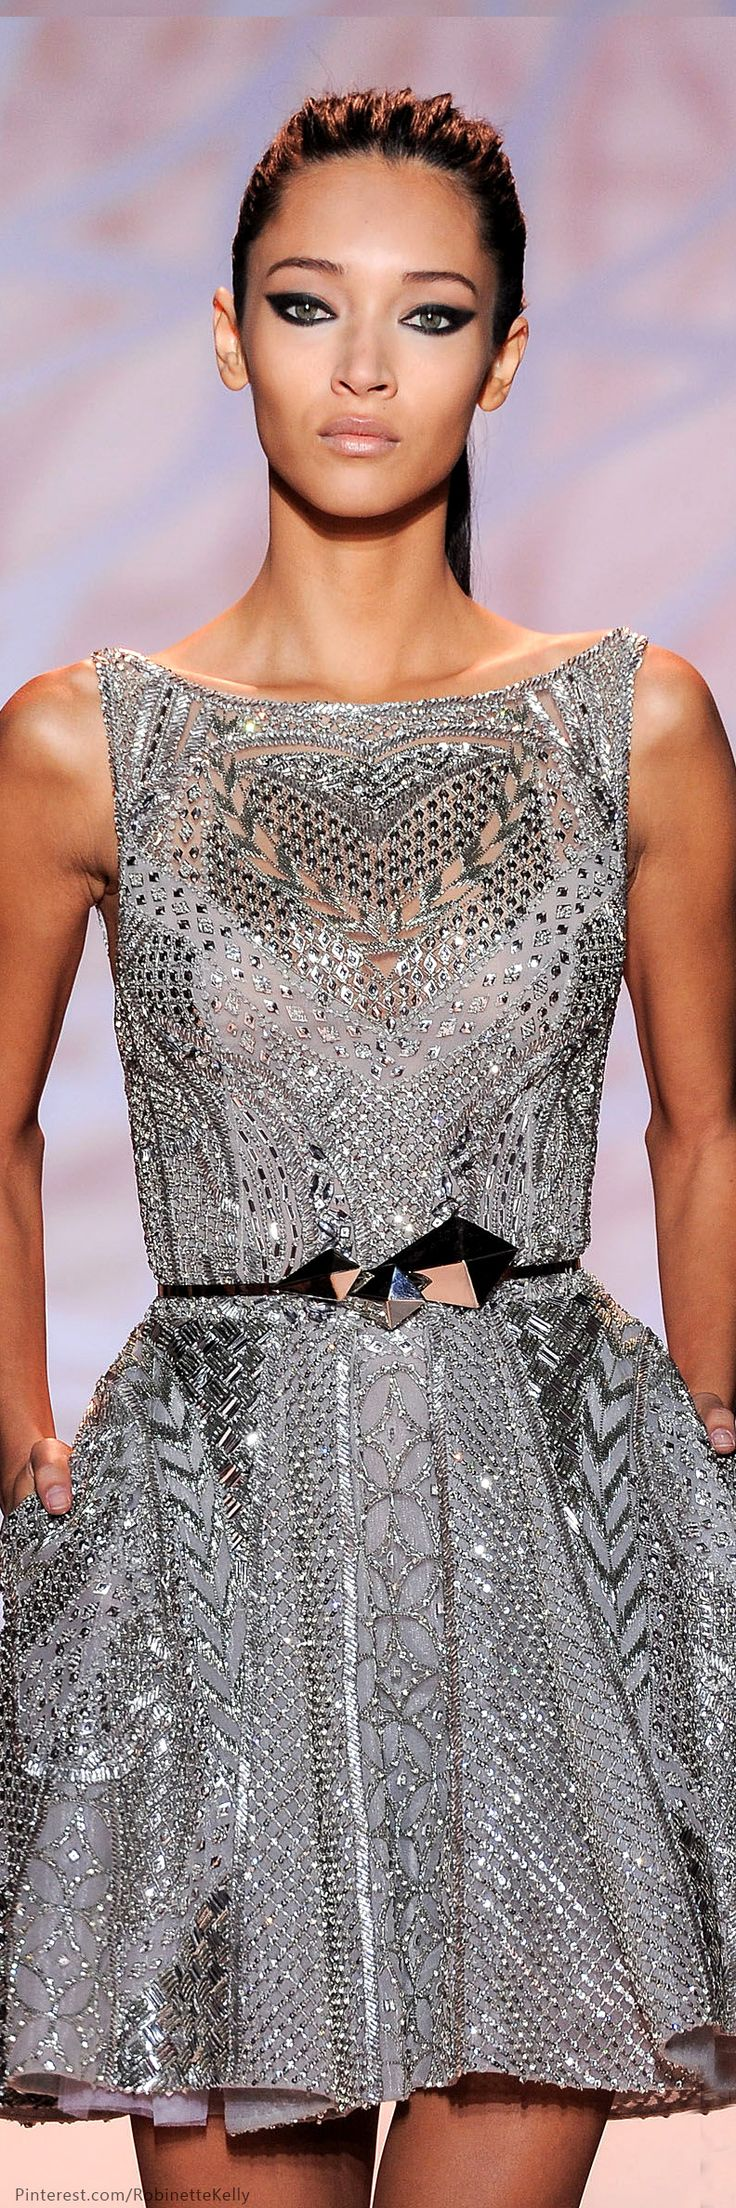 Zuhair Murad Haute Couture | F/W 2015 . cute inspiration for the upcoming holiday season